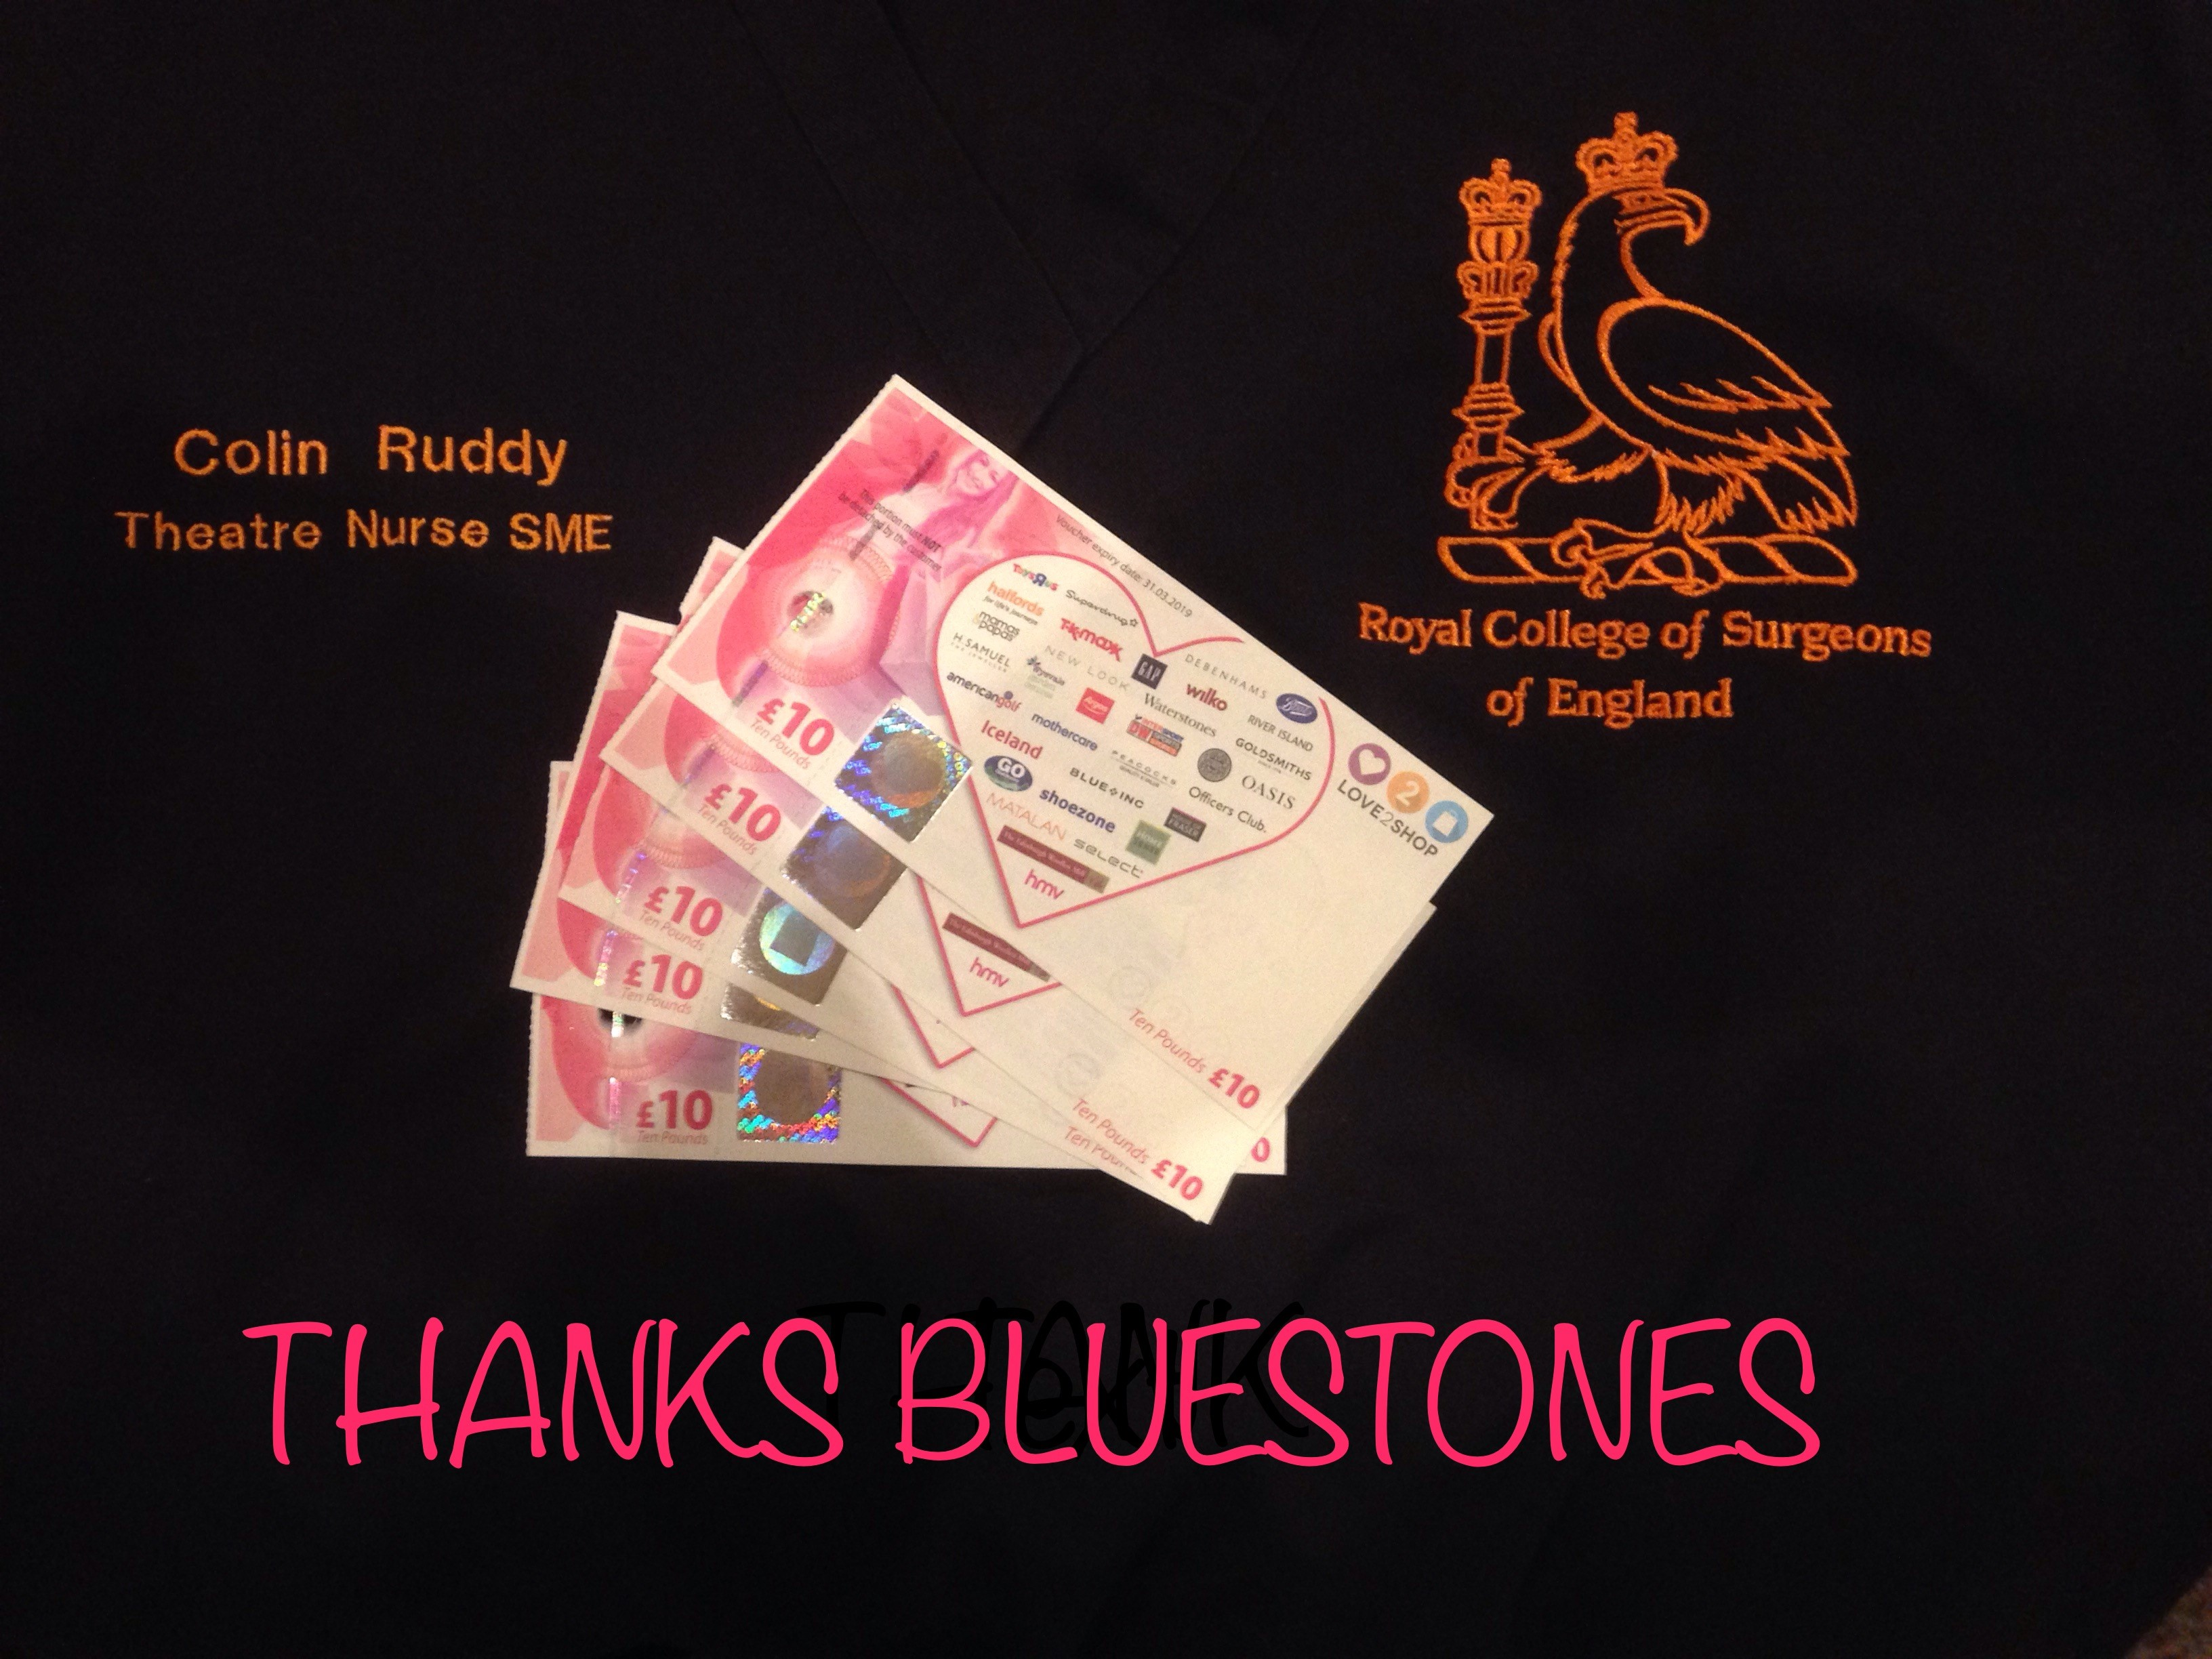 Colin Ruddy Thanks Bluestones